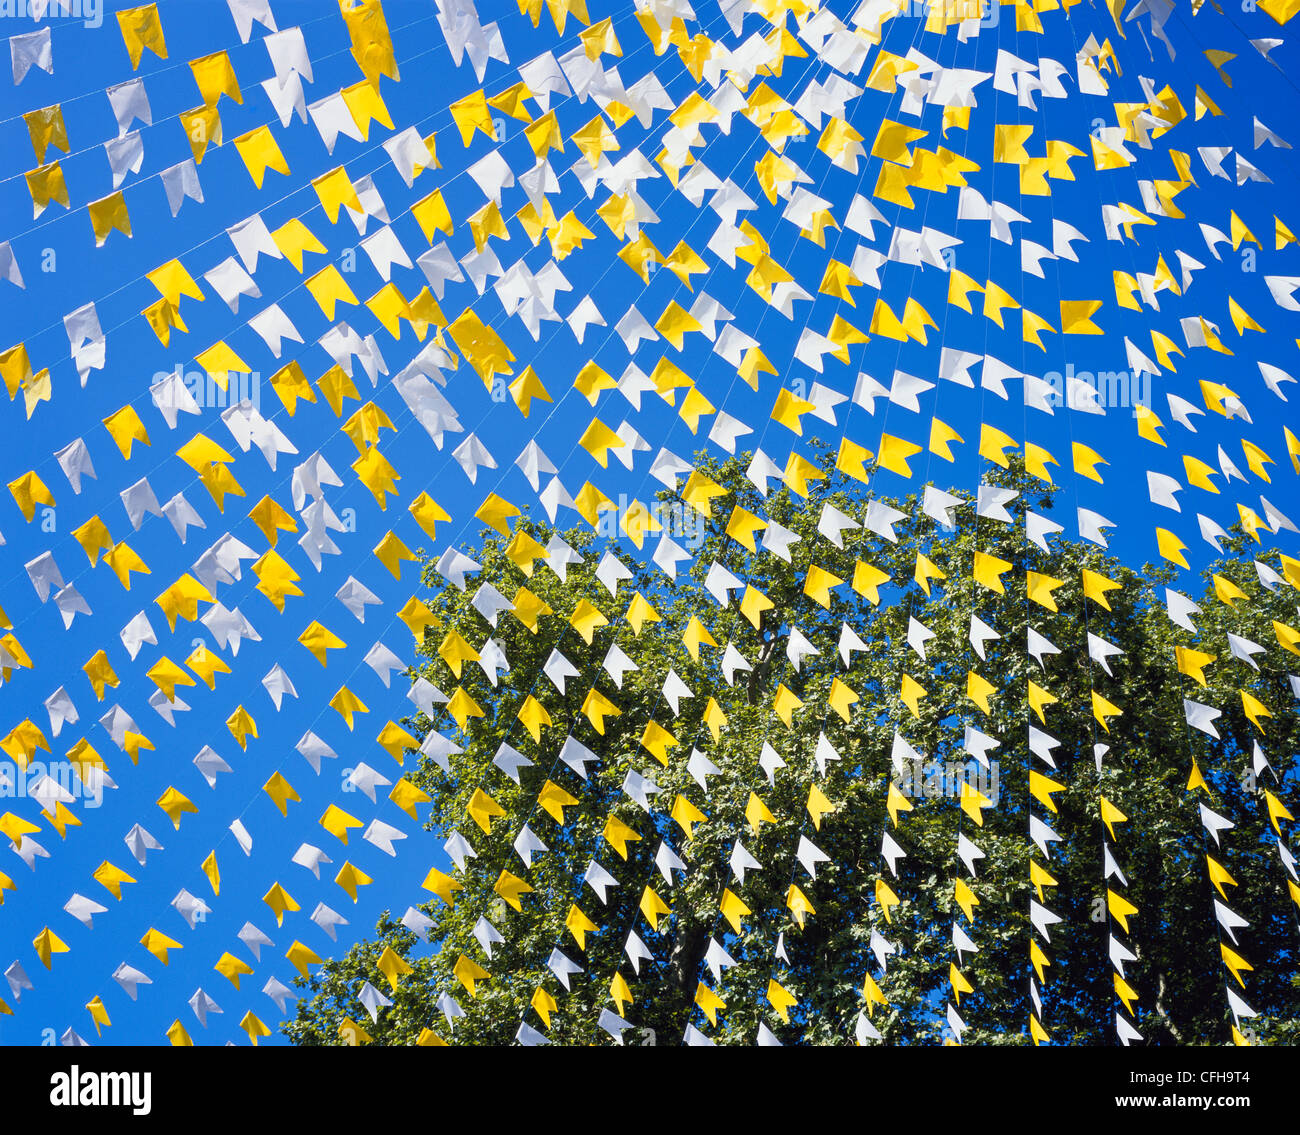 Garland Yellow Amp White Bunting Against Deep Blue Sky And Tree